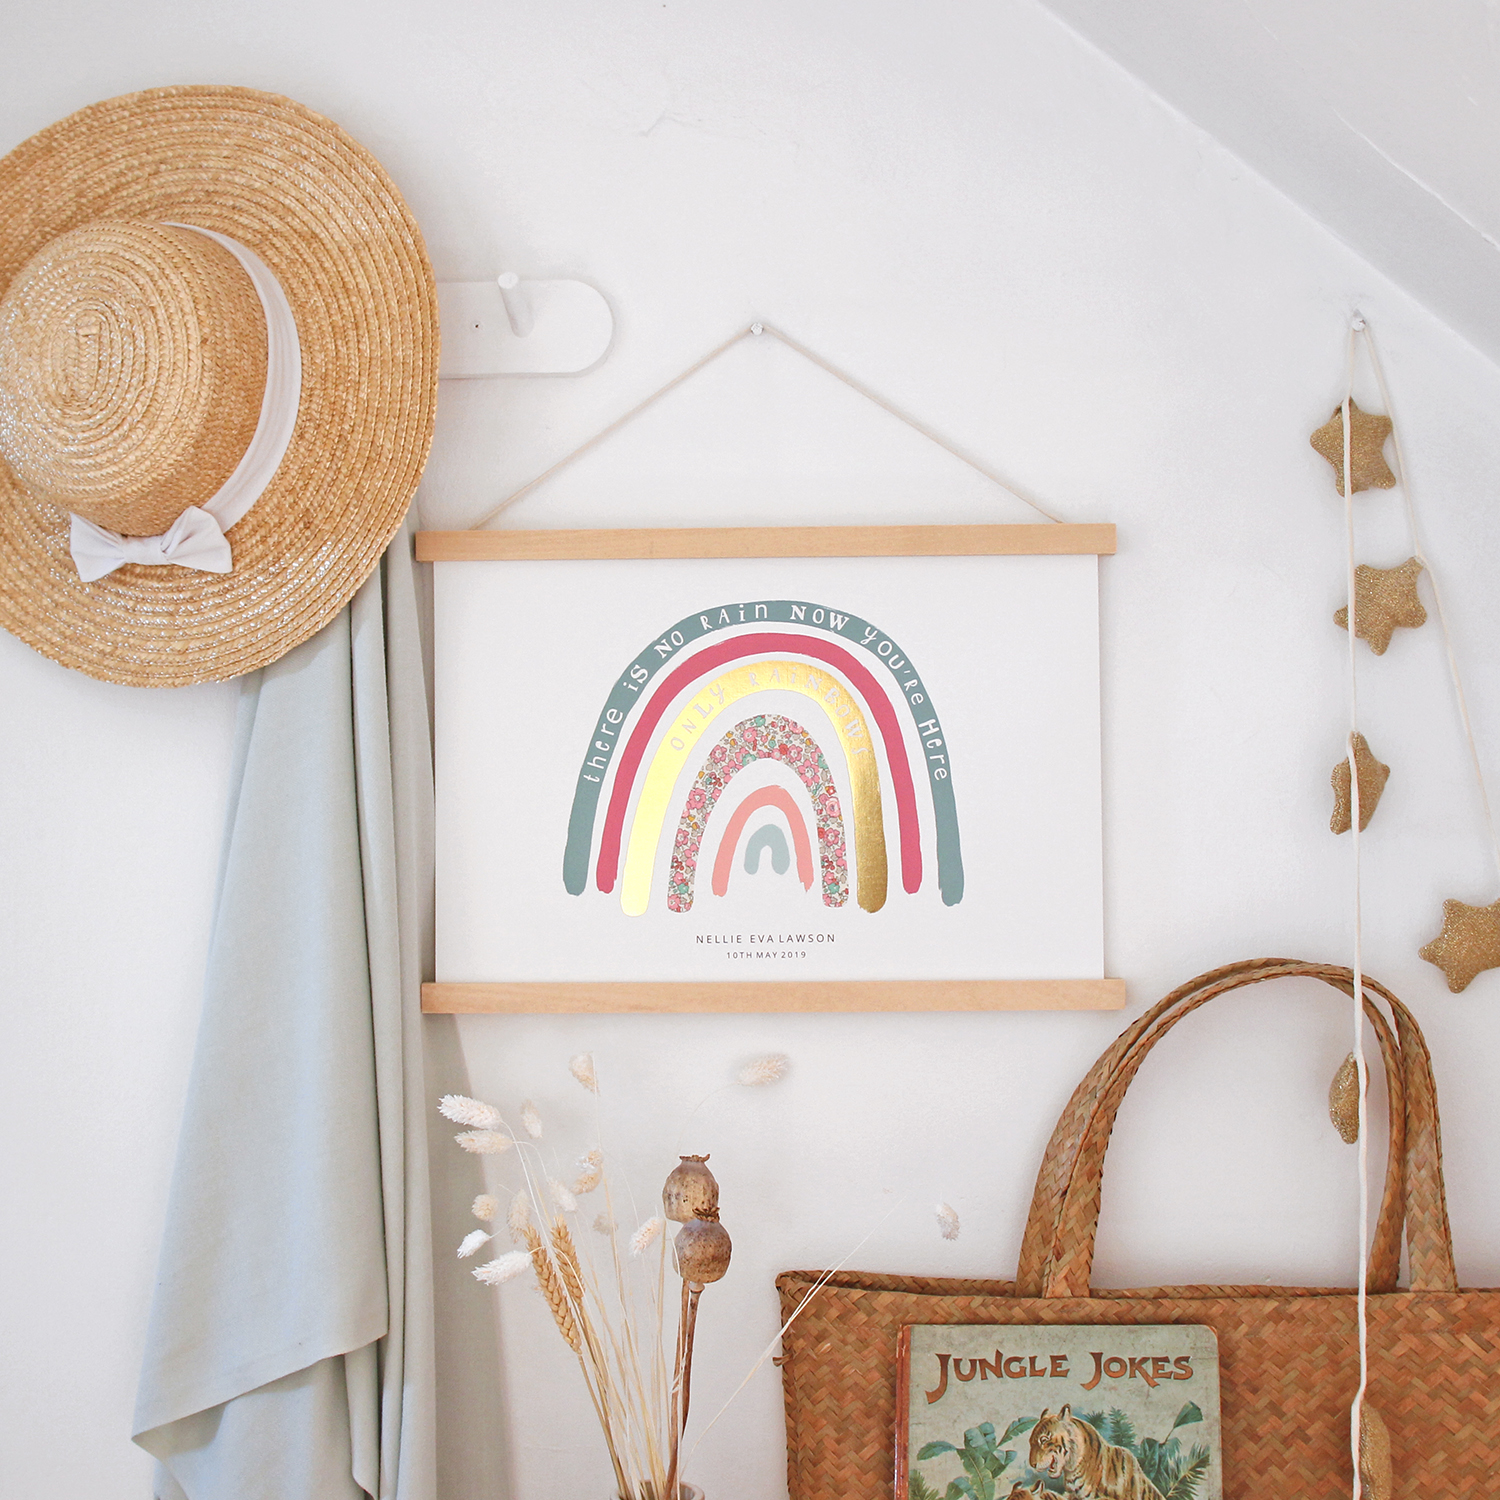 The-Charming-Press-product-photography-nancy-straughan-nursery-prints-art-styling-rainbow.jpg